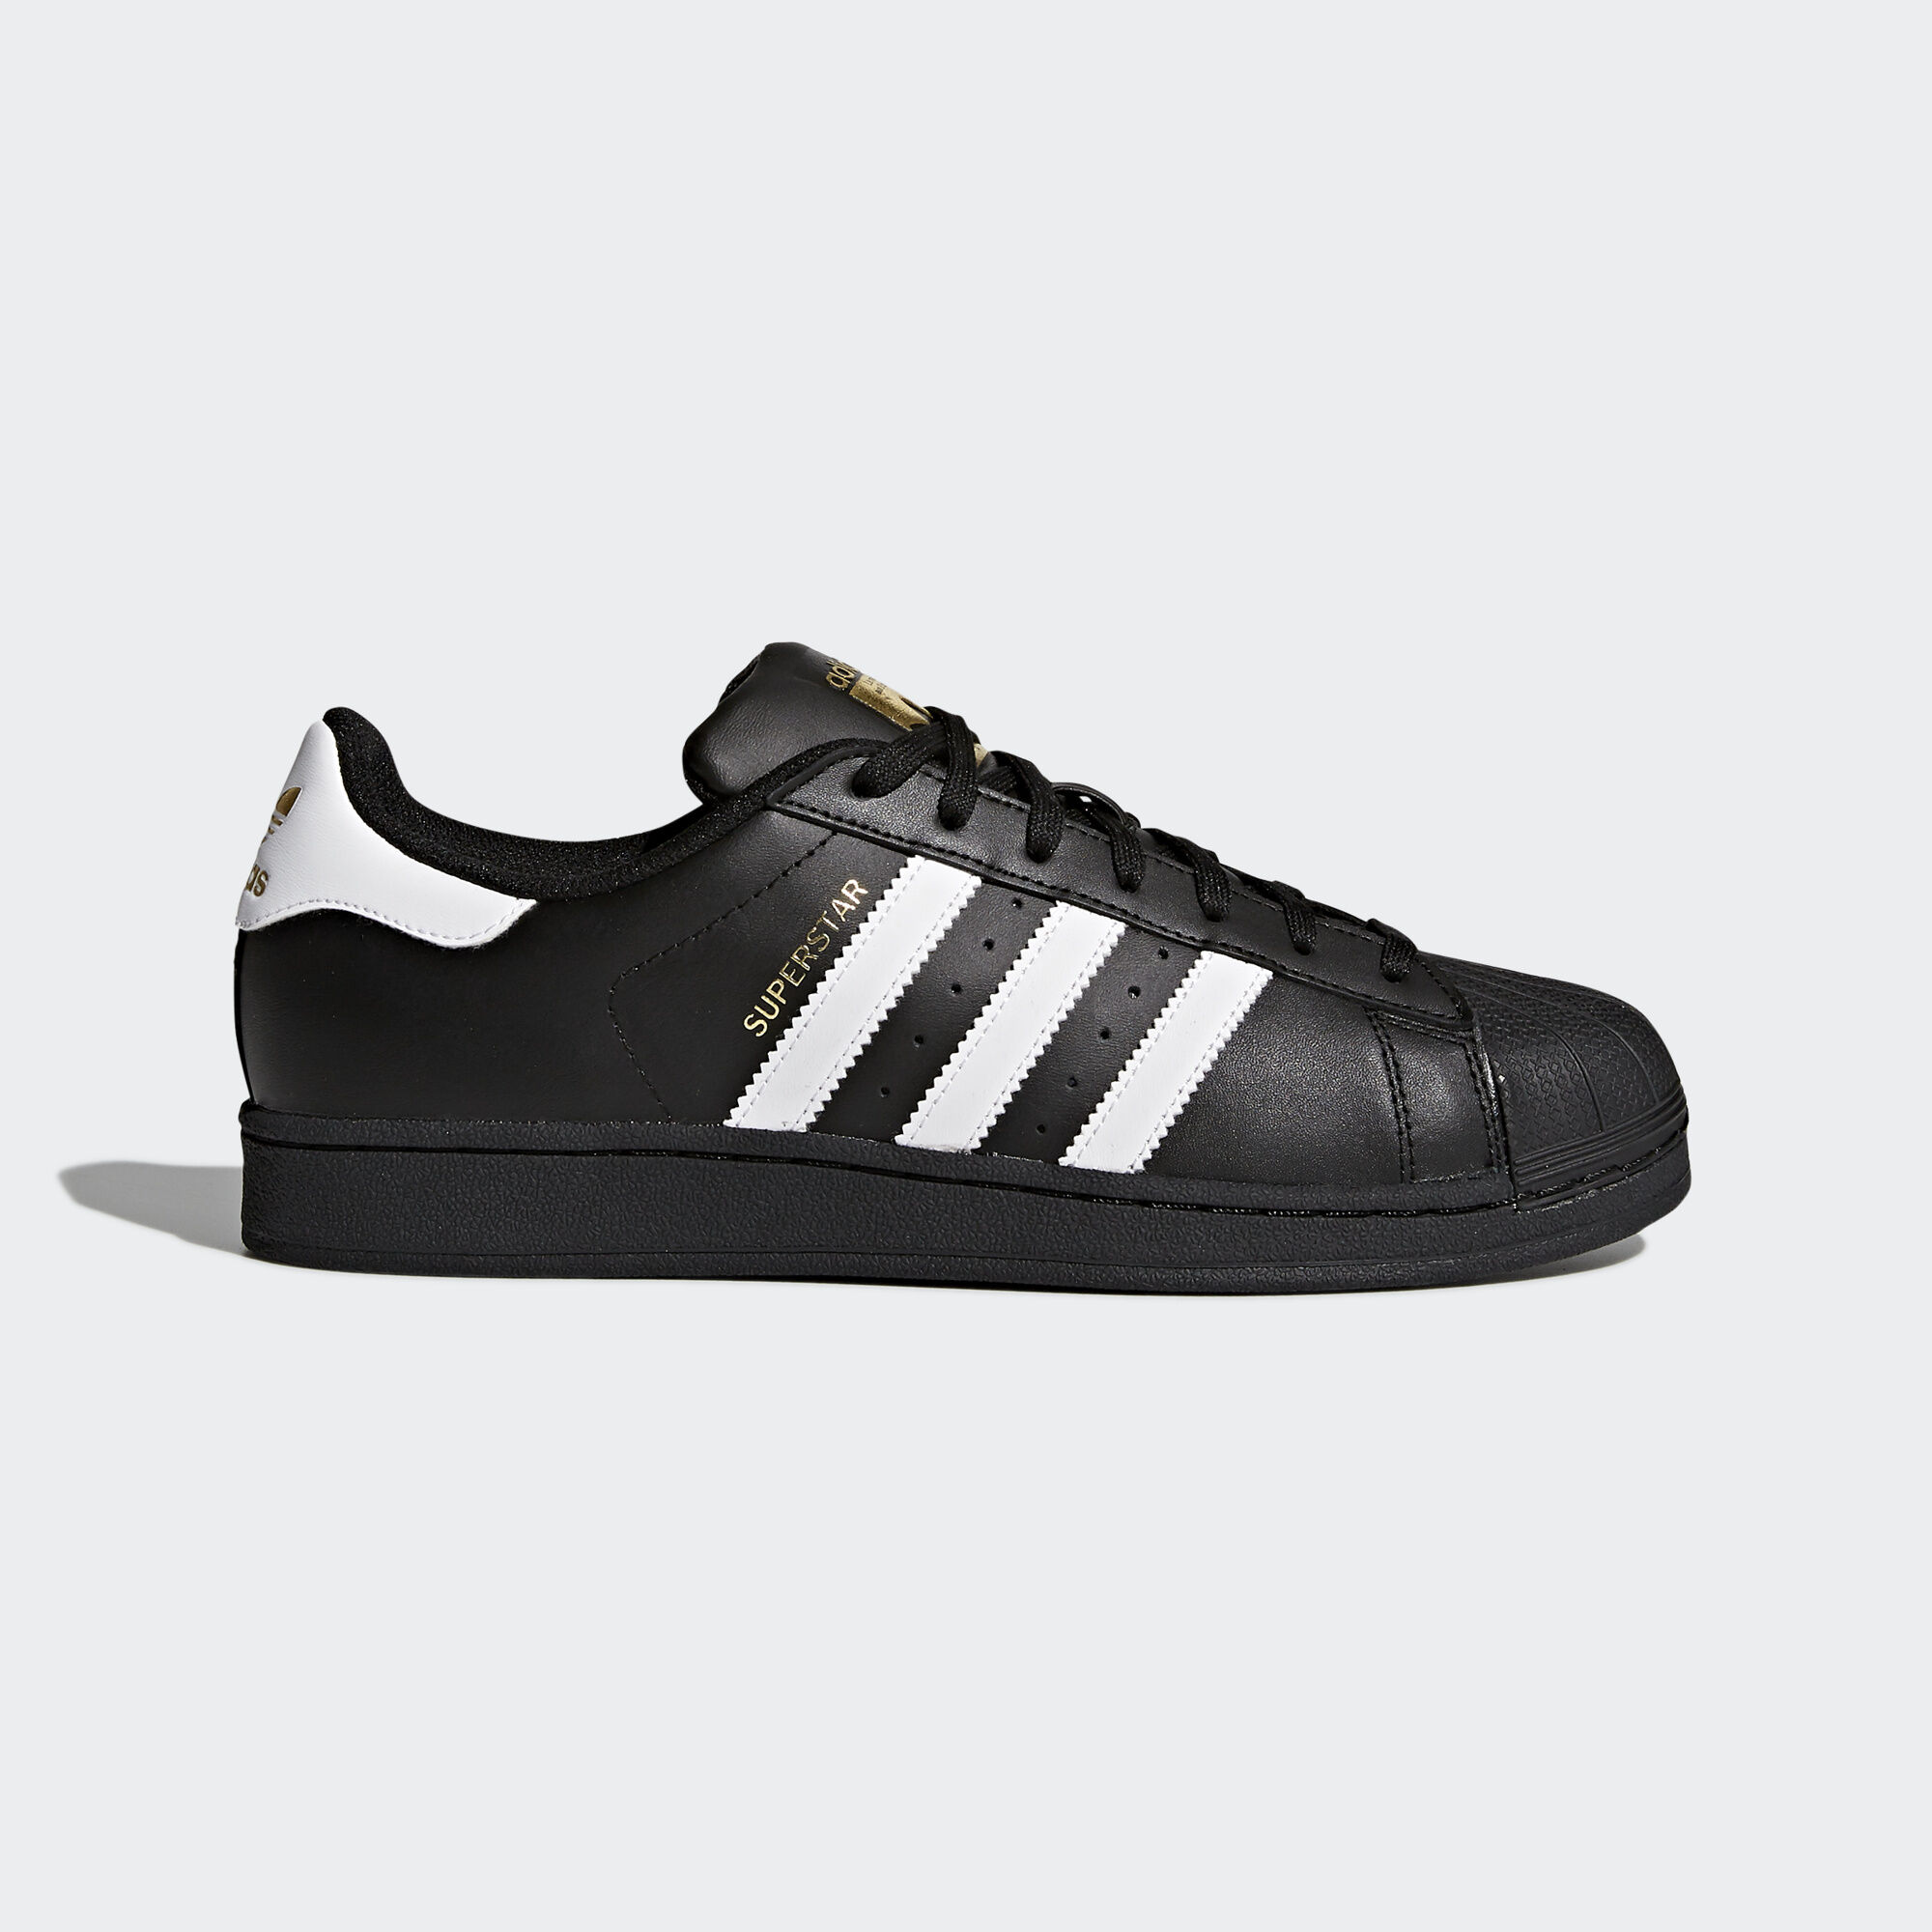 adidas retro superstar